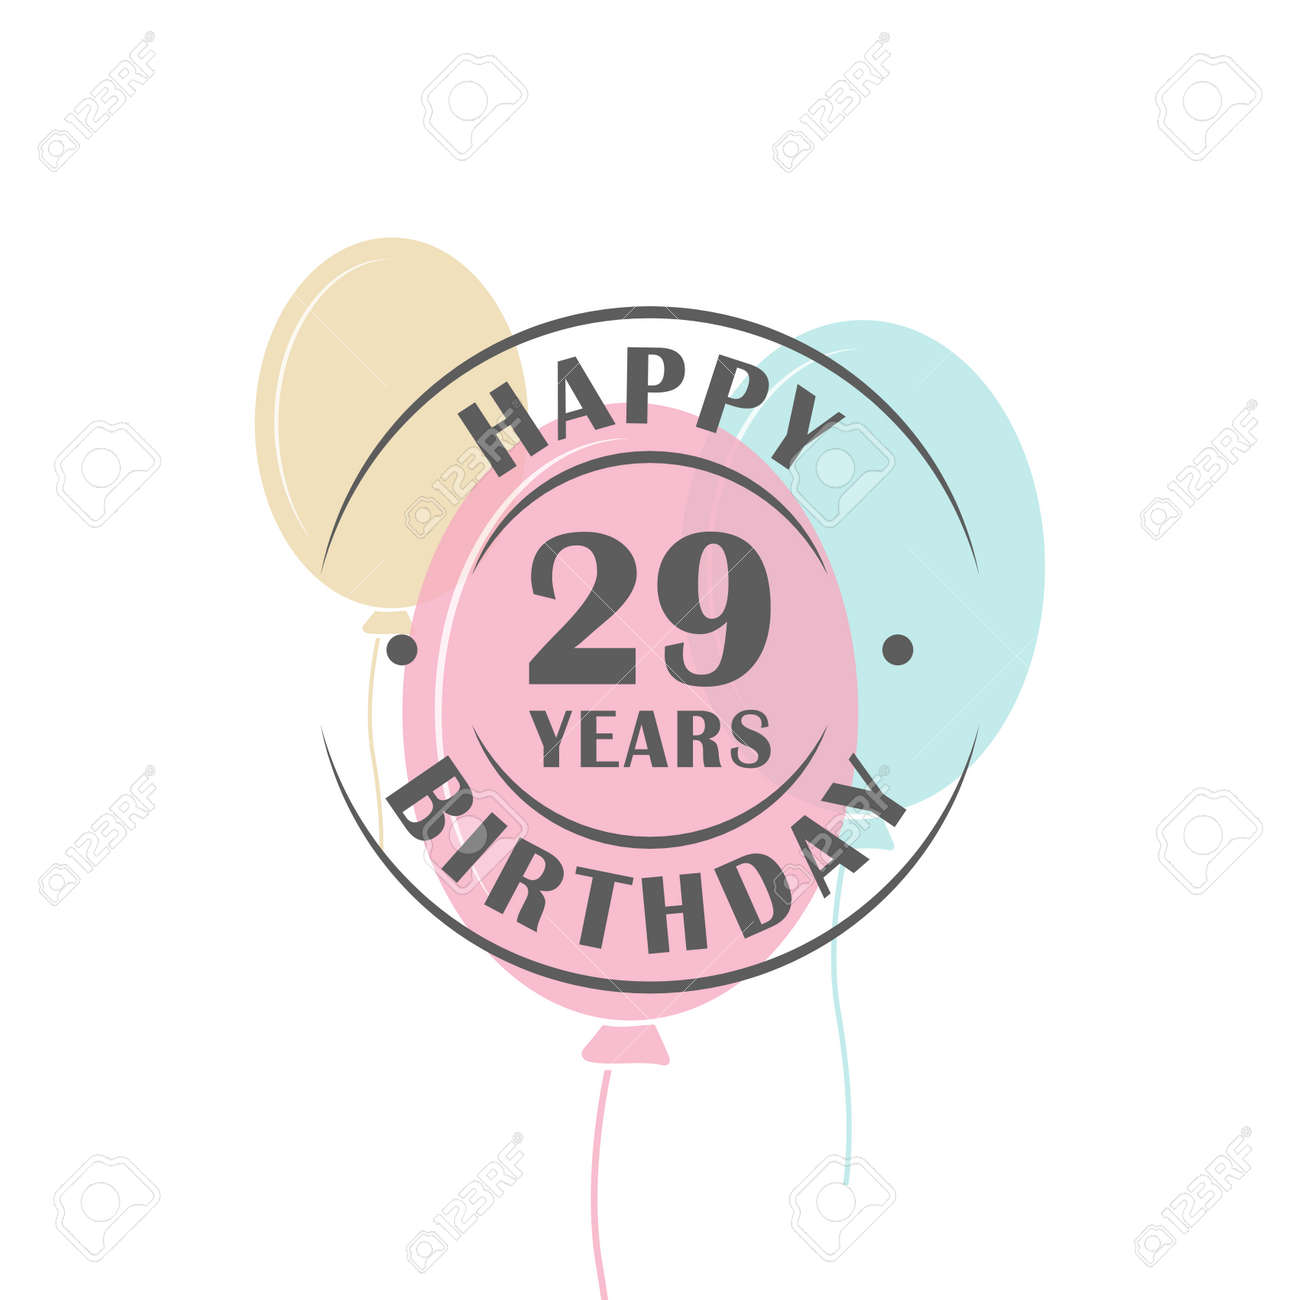 Happy birthday 29 years round logo with festive balloons greeting happy birthday 29 years round logo with festive balloons greeting card template stock vector bookmarktalkfo Images